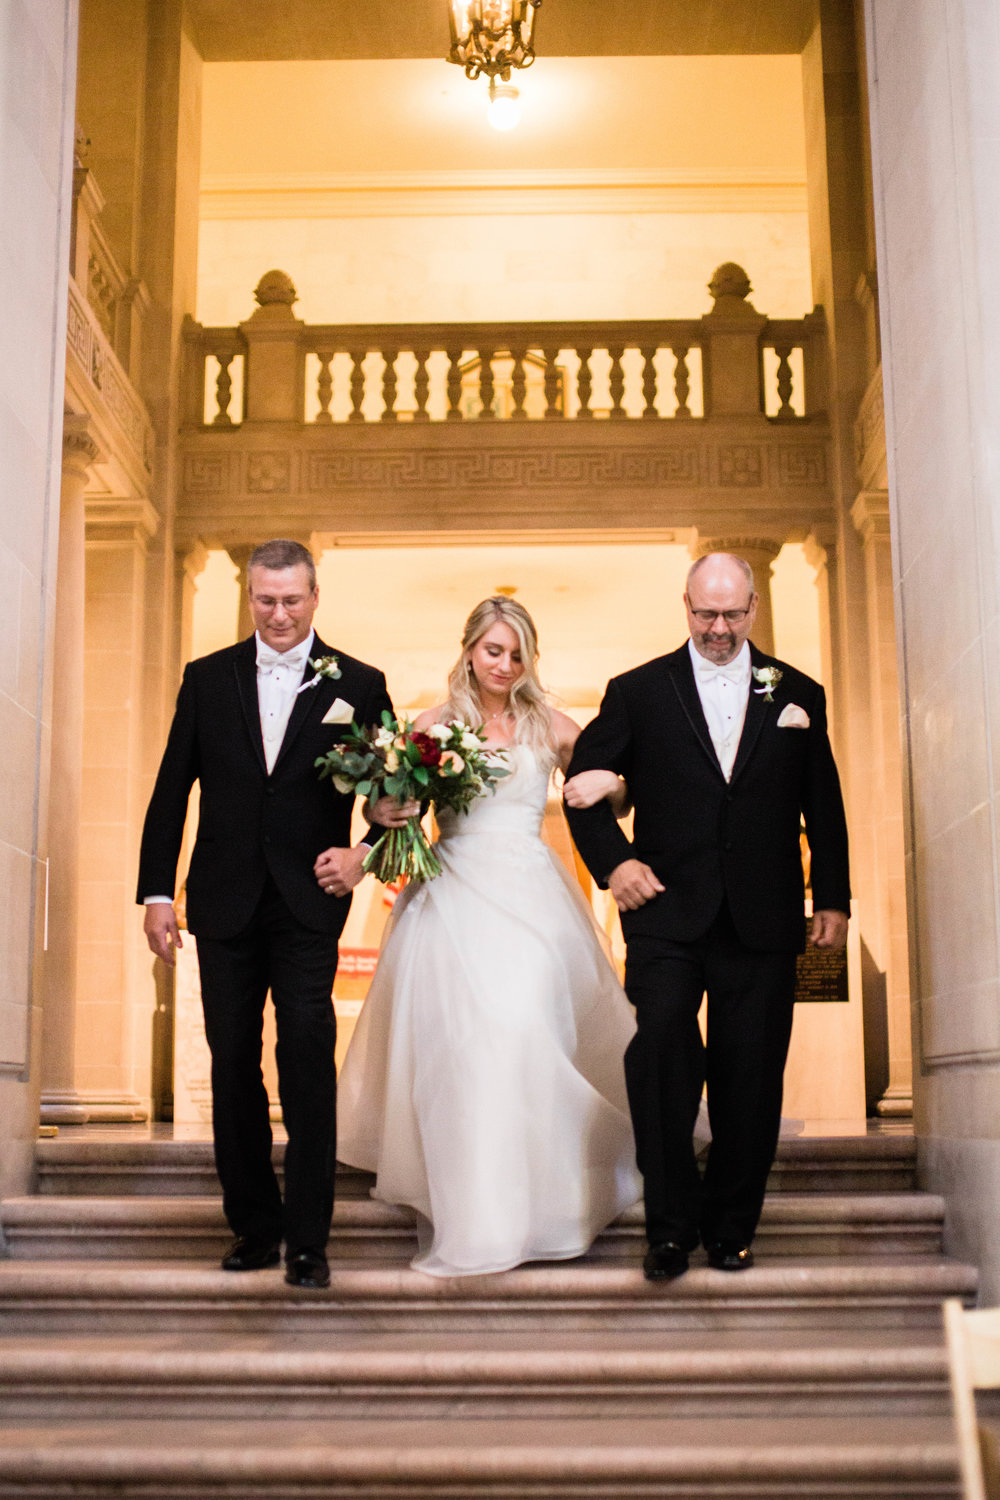 DennisRoyCoronel_Photography_SanFranciscoCityHall_Wedding-38.jpg